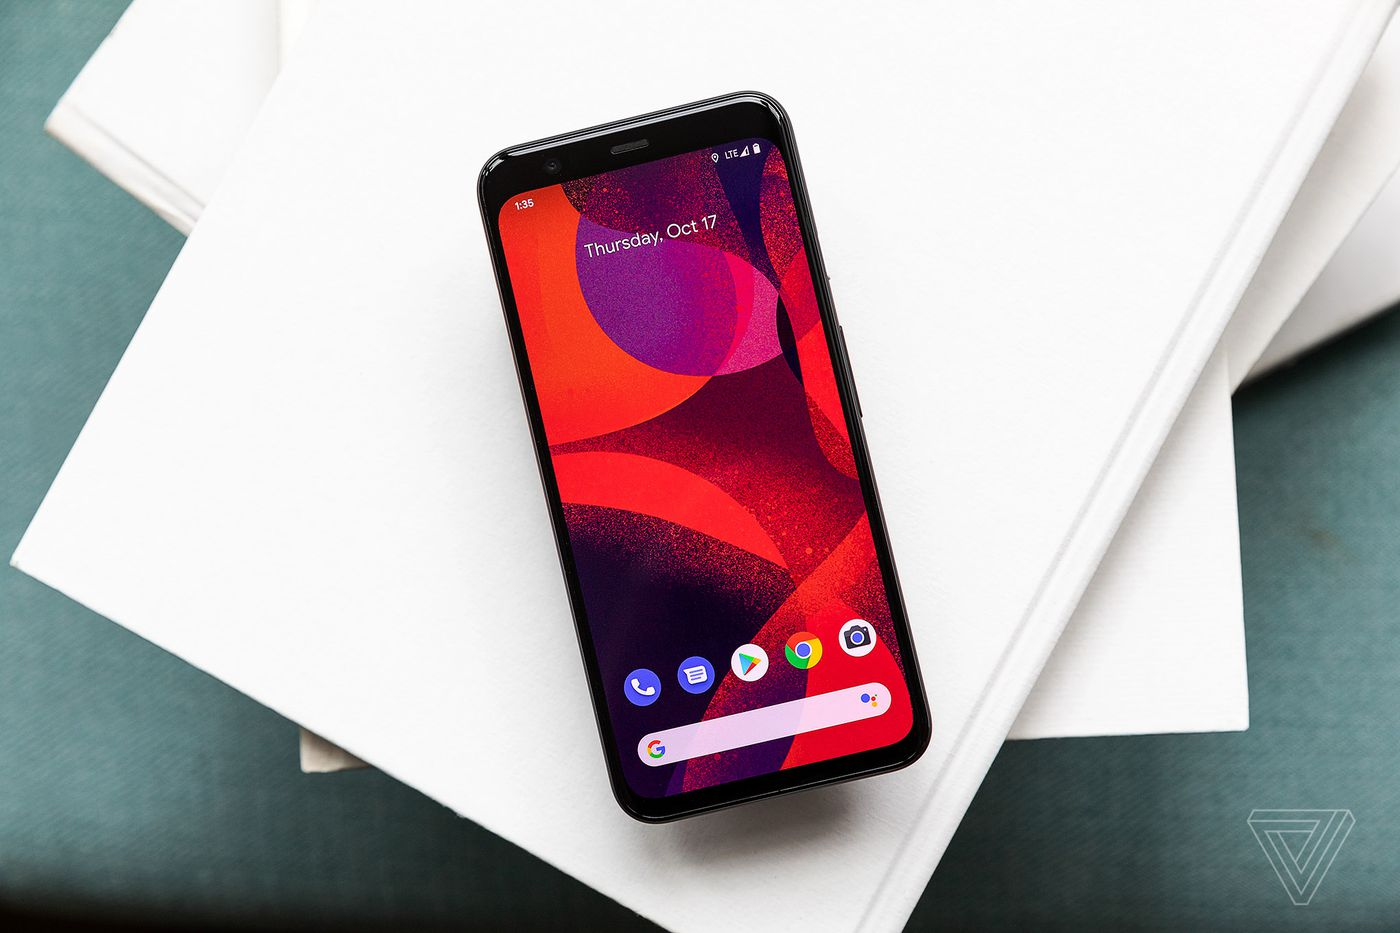 Black Friday And Cyber Monday Google Deals Pixel 4 Pixel 3a Stadia Nest Wifi And More The Verge